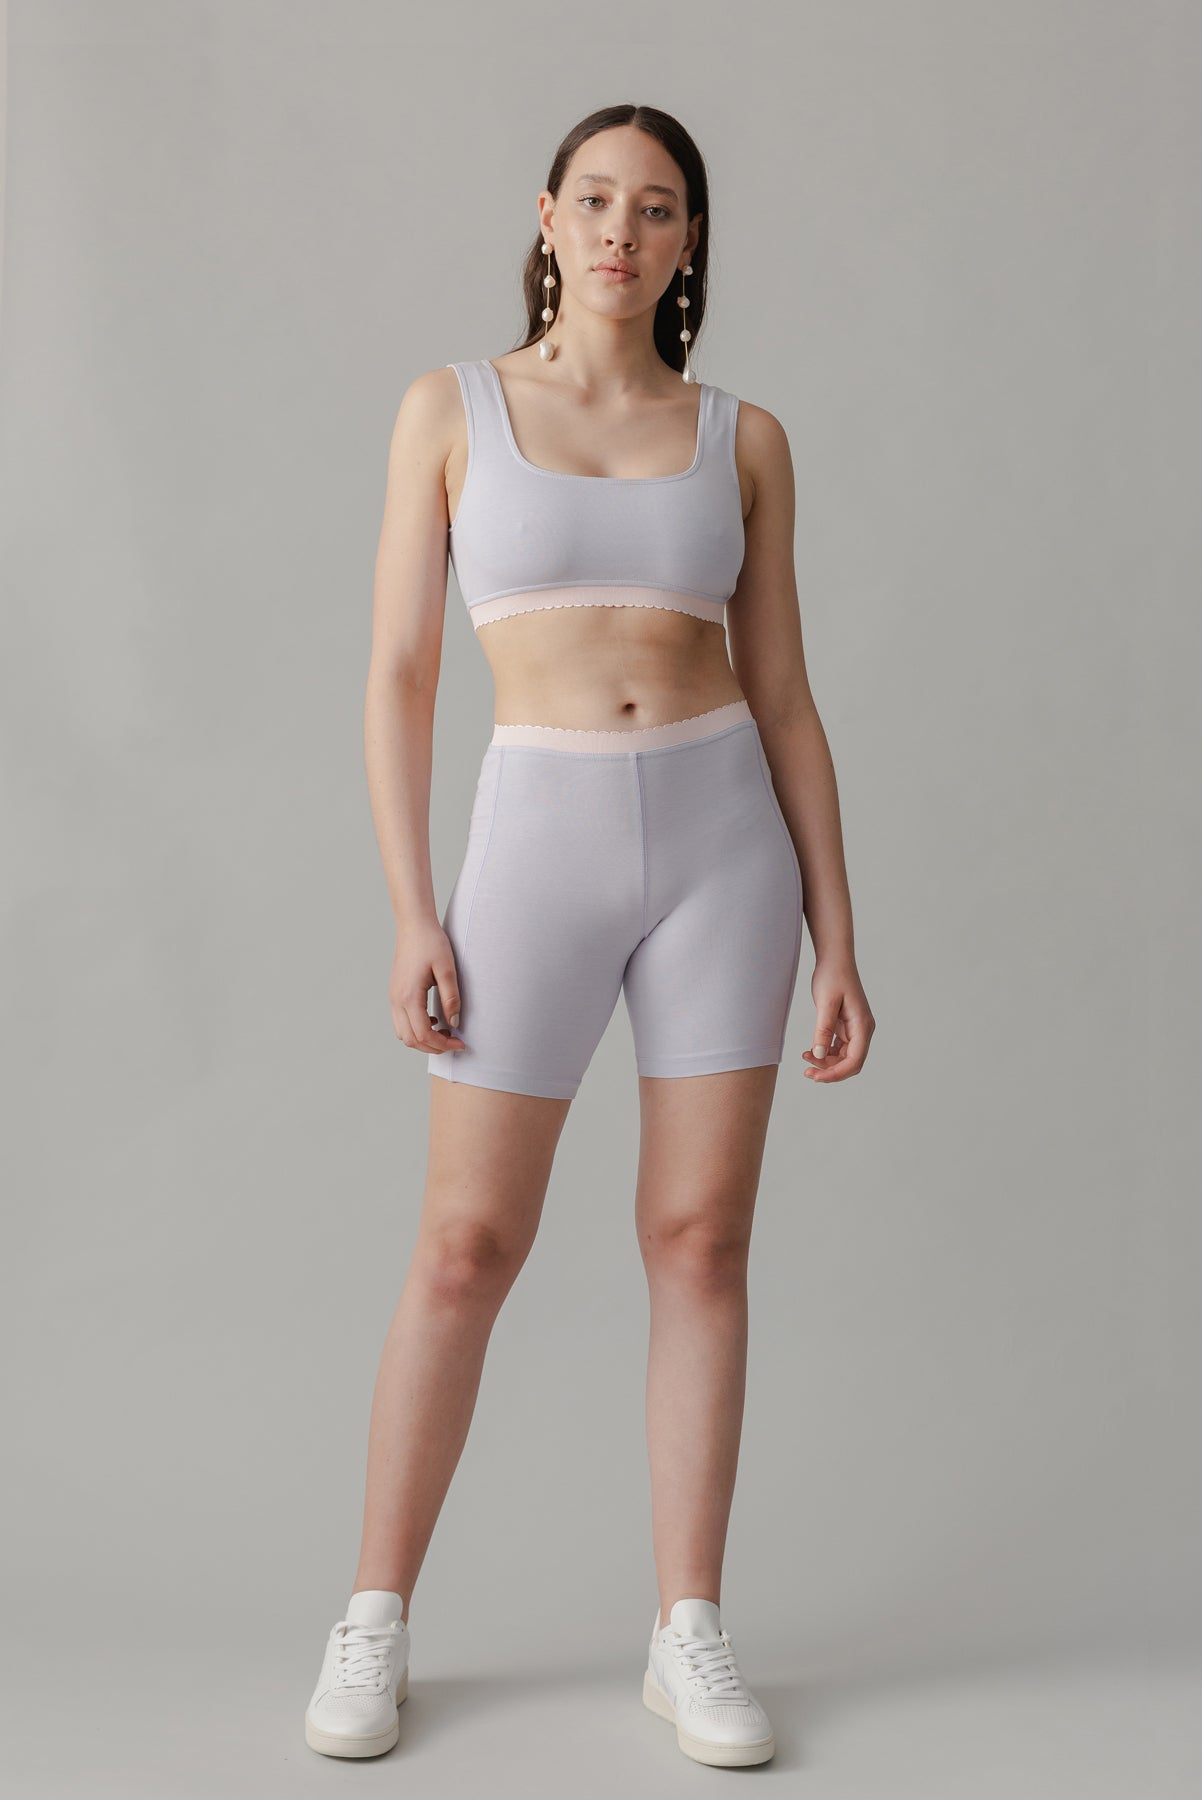 Scallop Bike Short - Marshmallow